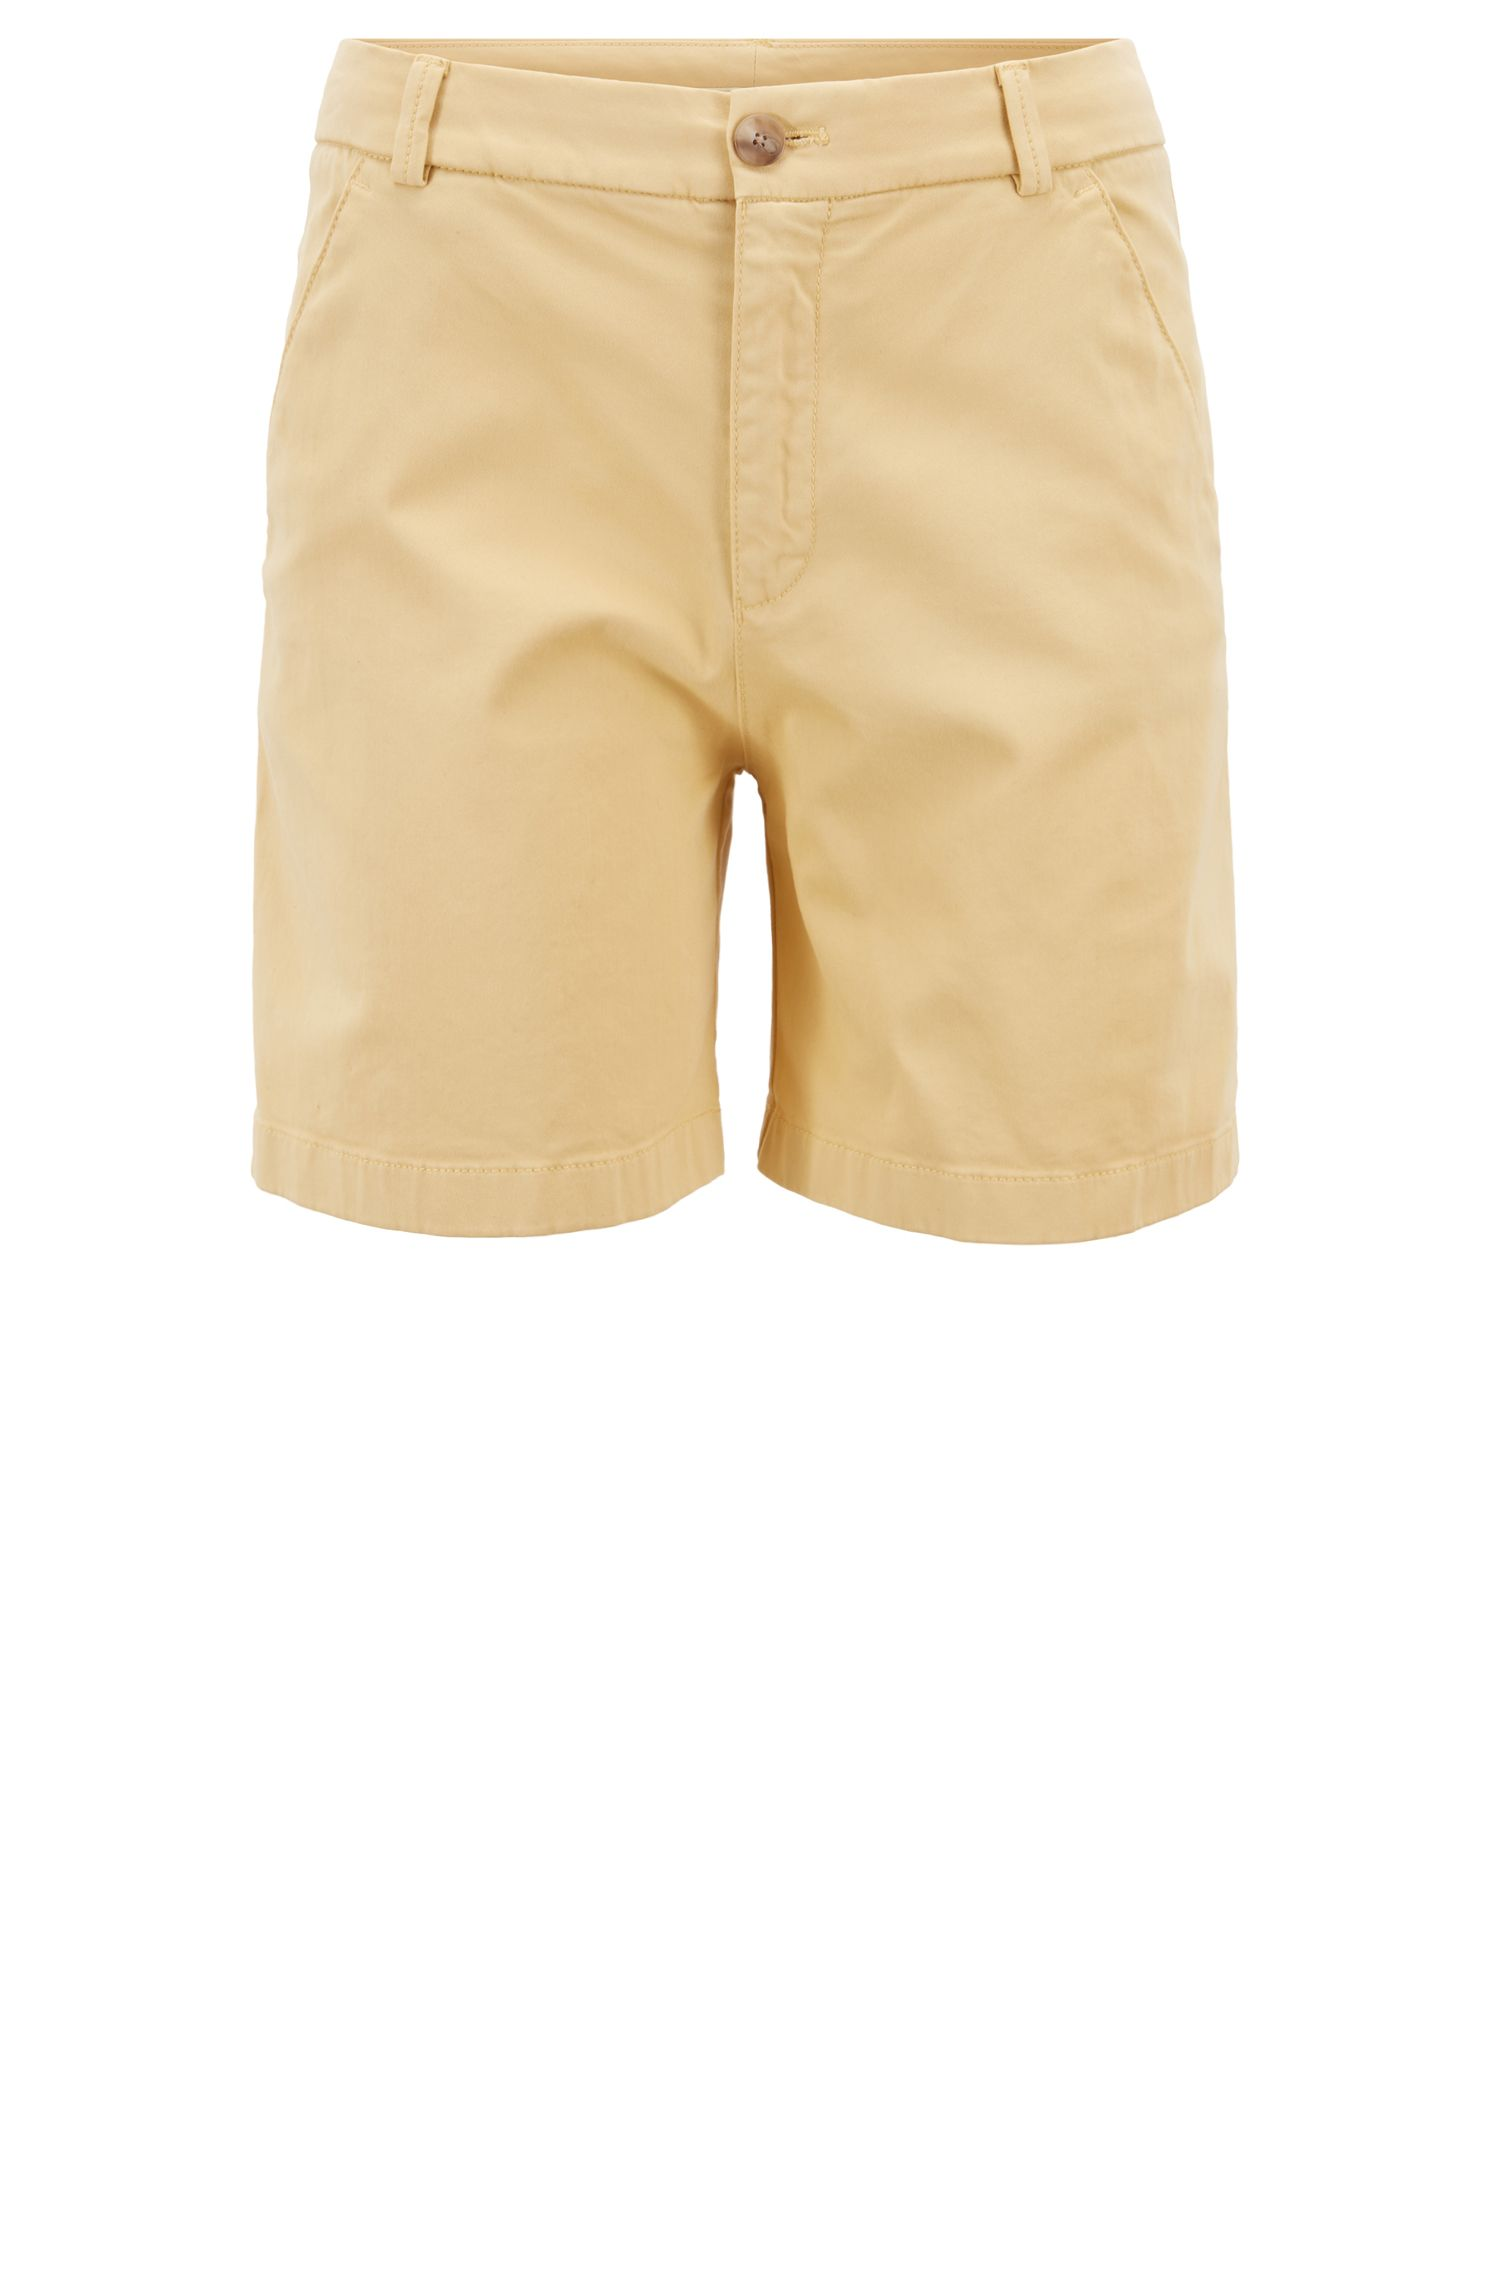 Shorts regular fit en algodón elástico con un tacto satinado, Amarillo claro